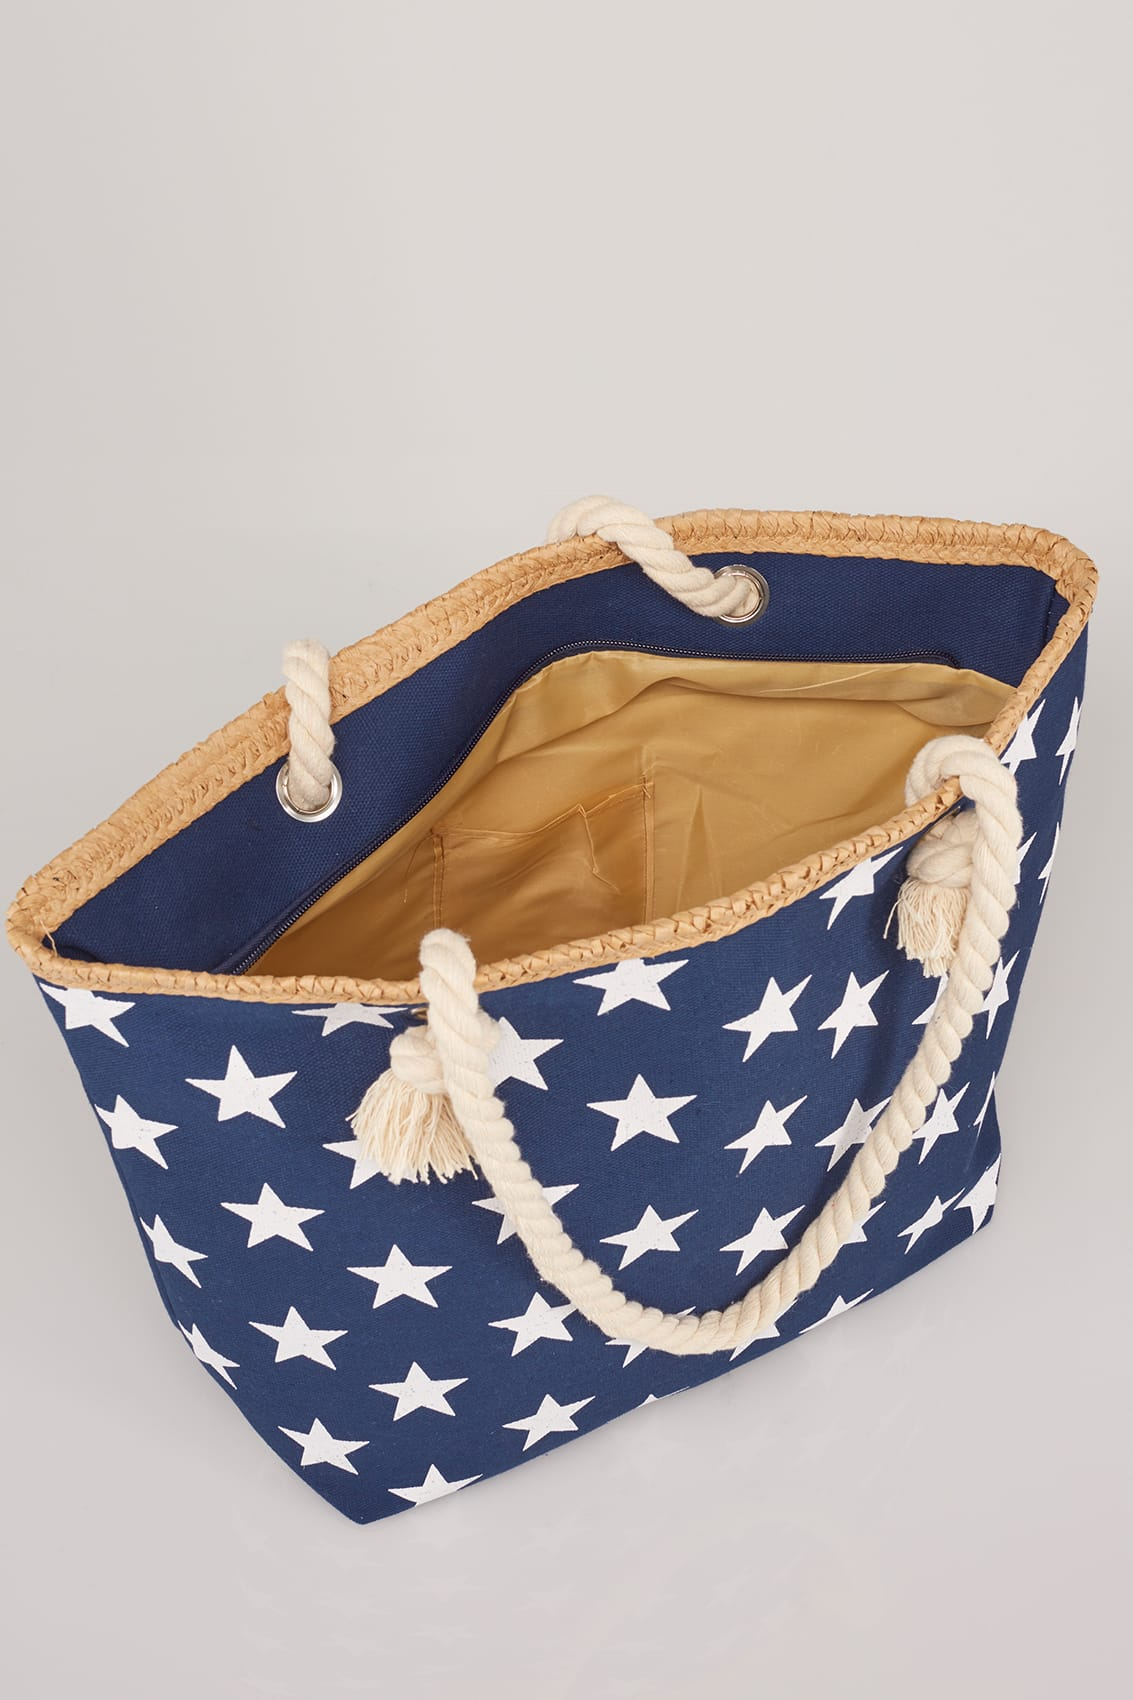 Navy  White Star Print Beach Bag With Rope Handles-1304